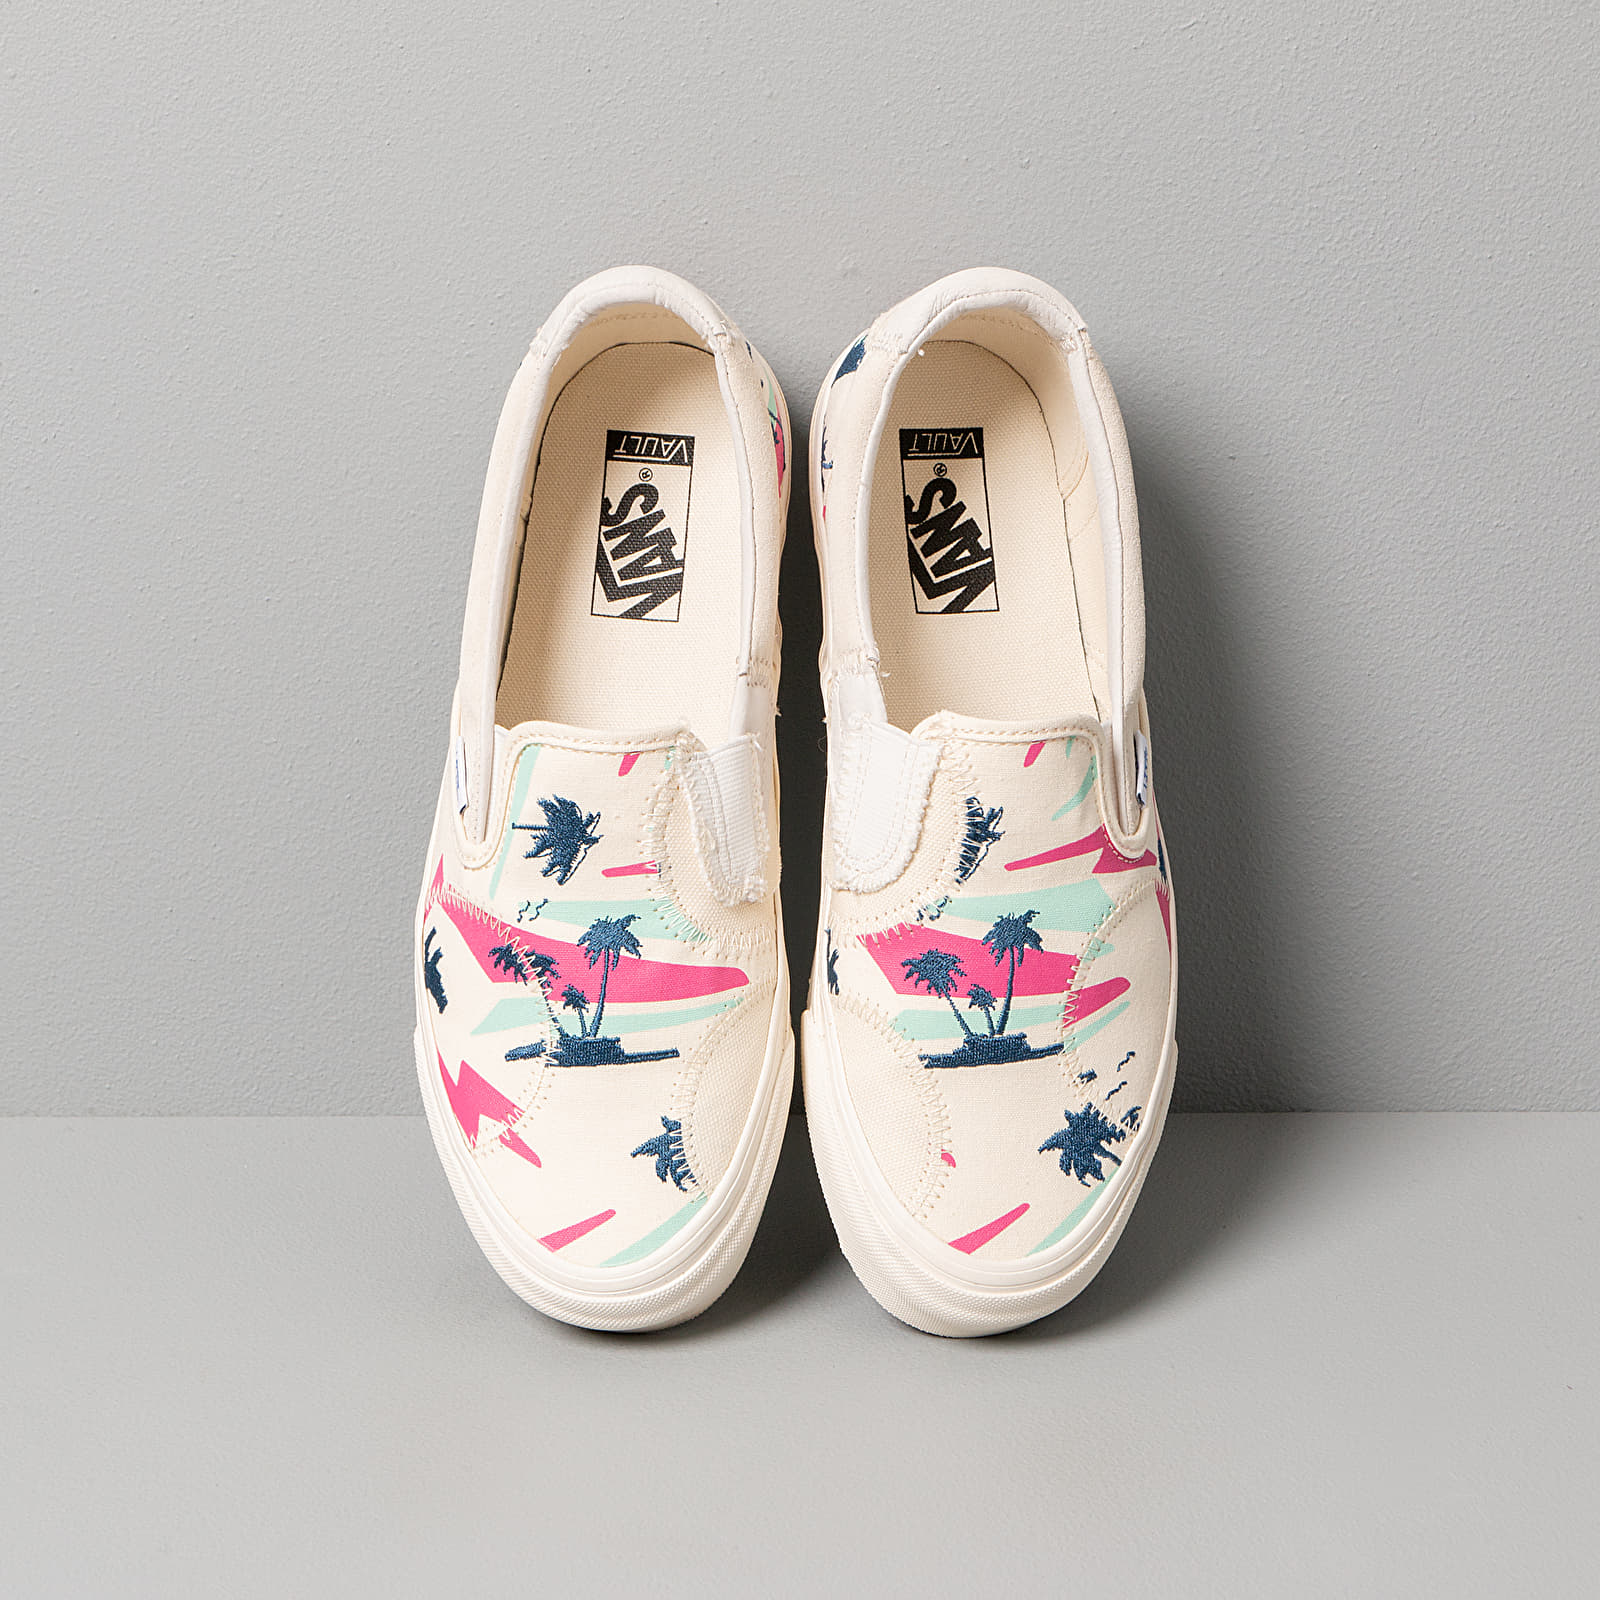 Vans Classic Slip On Bricolage LX (Embroidered Palm) Classic | Footshop